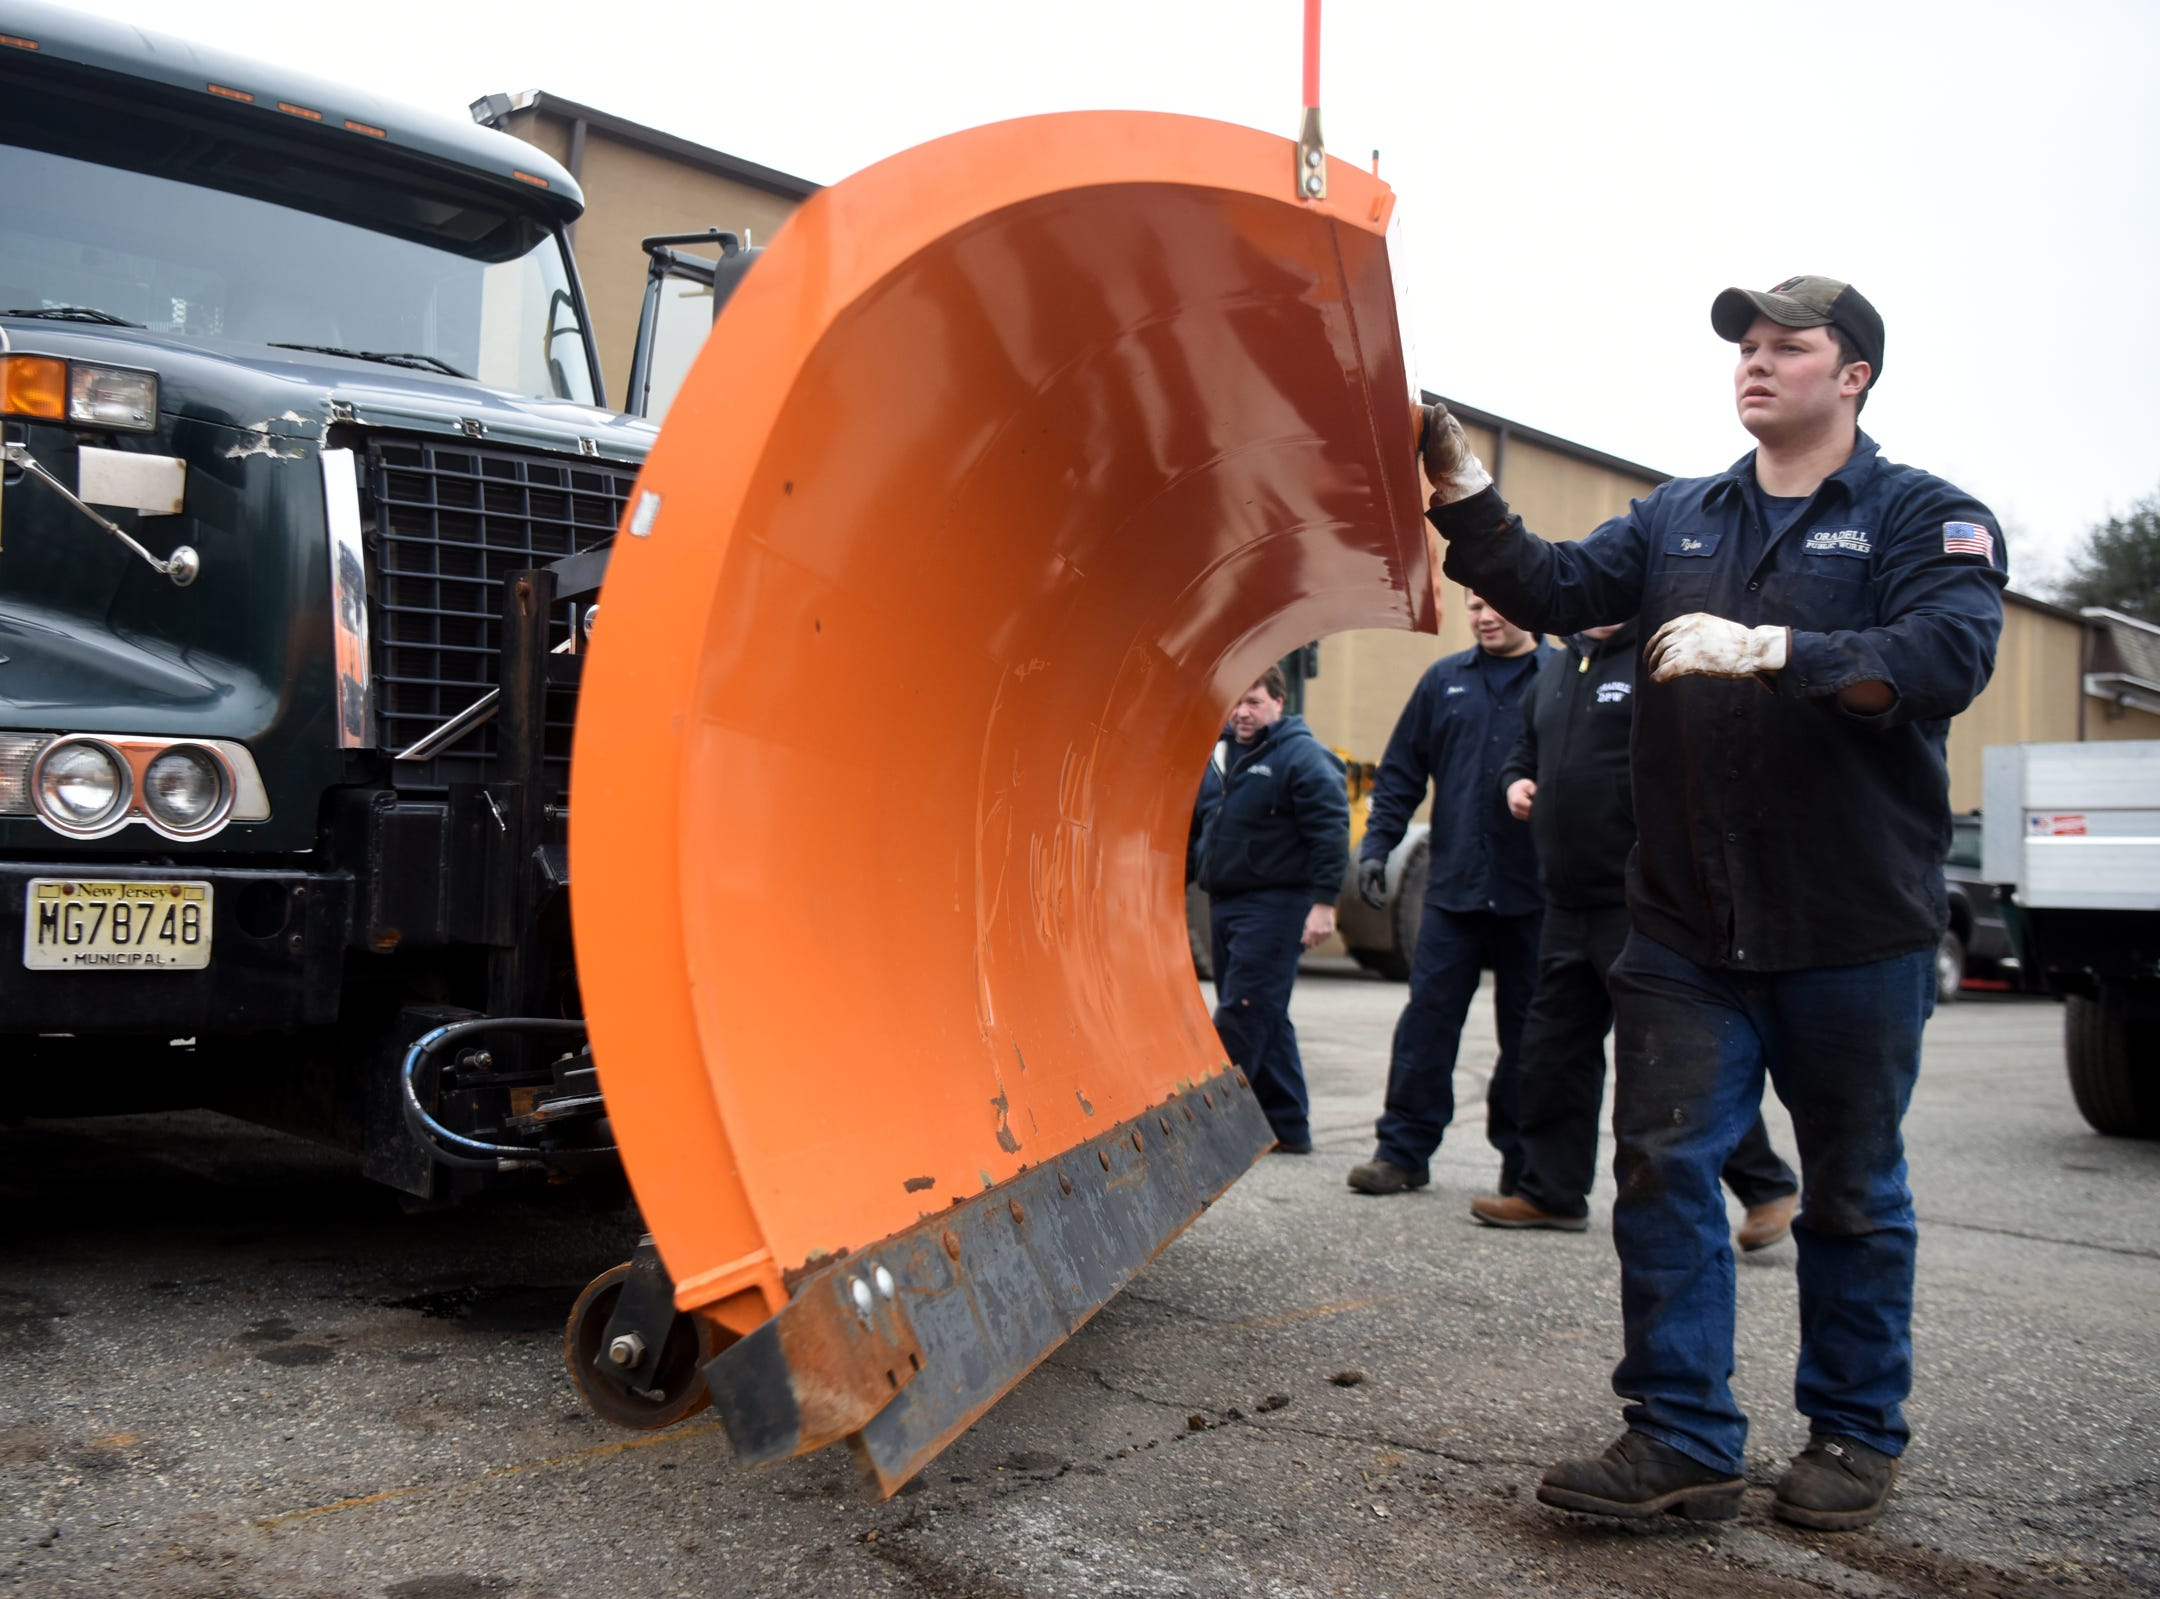 Borough of Oradell Department of Public Works employees including Tyler Coss y Leon, far right, make sure a snow plow is properly attached to a truck on Monday, February 11, 2019 in preparation for a winter storm that could bring snow, ice and freezing rain on Tuesday.